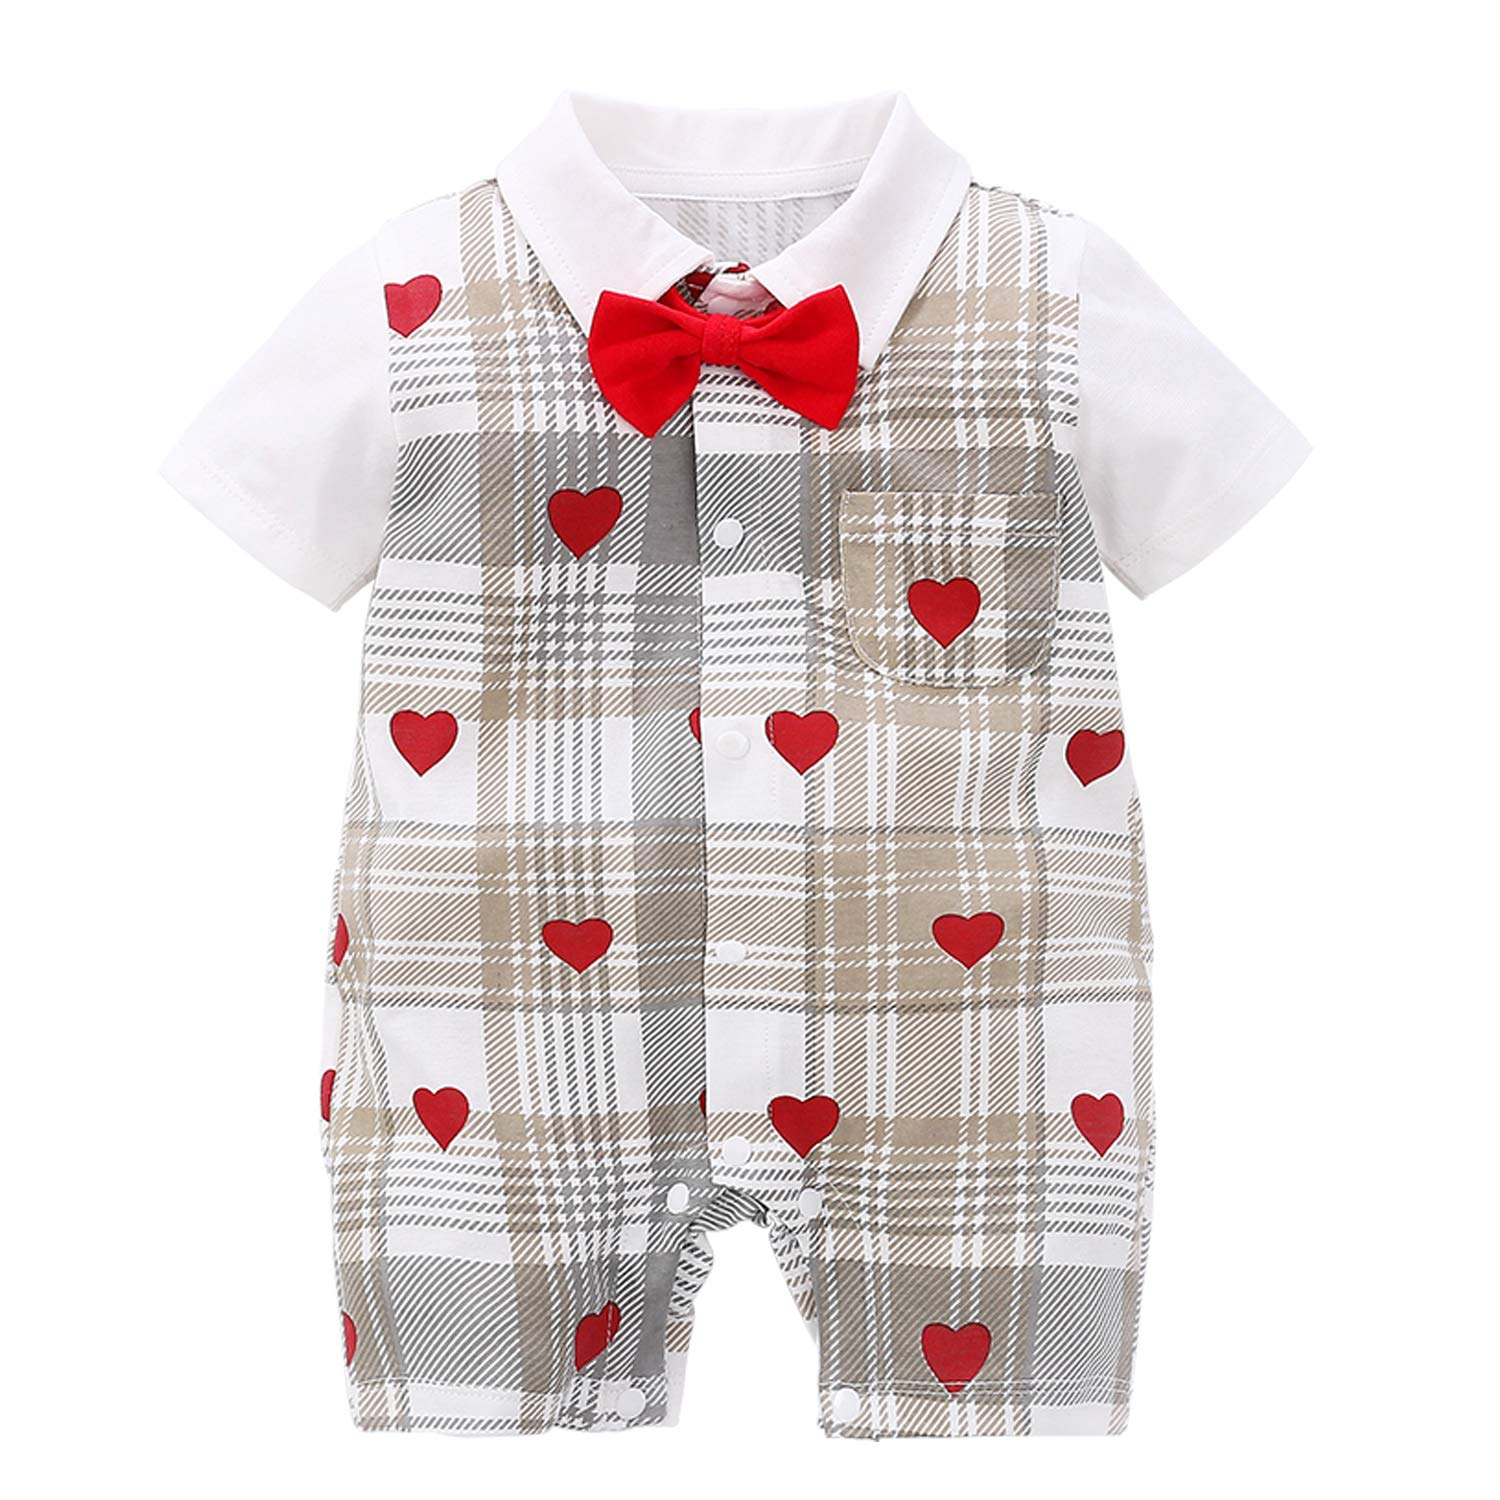 YFYBaby Baby Boy Gentleman Outfit Formal Short Sleeve Bowtie Suit Onesie Jumpsuit Overall Romper